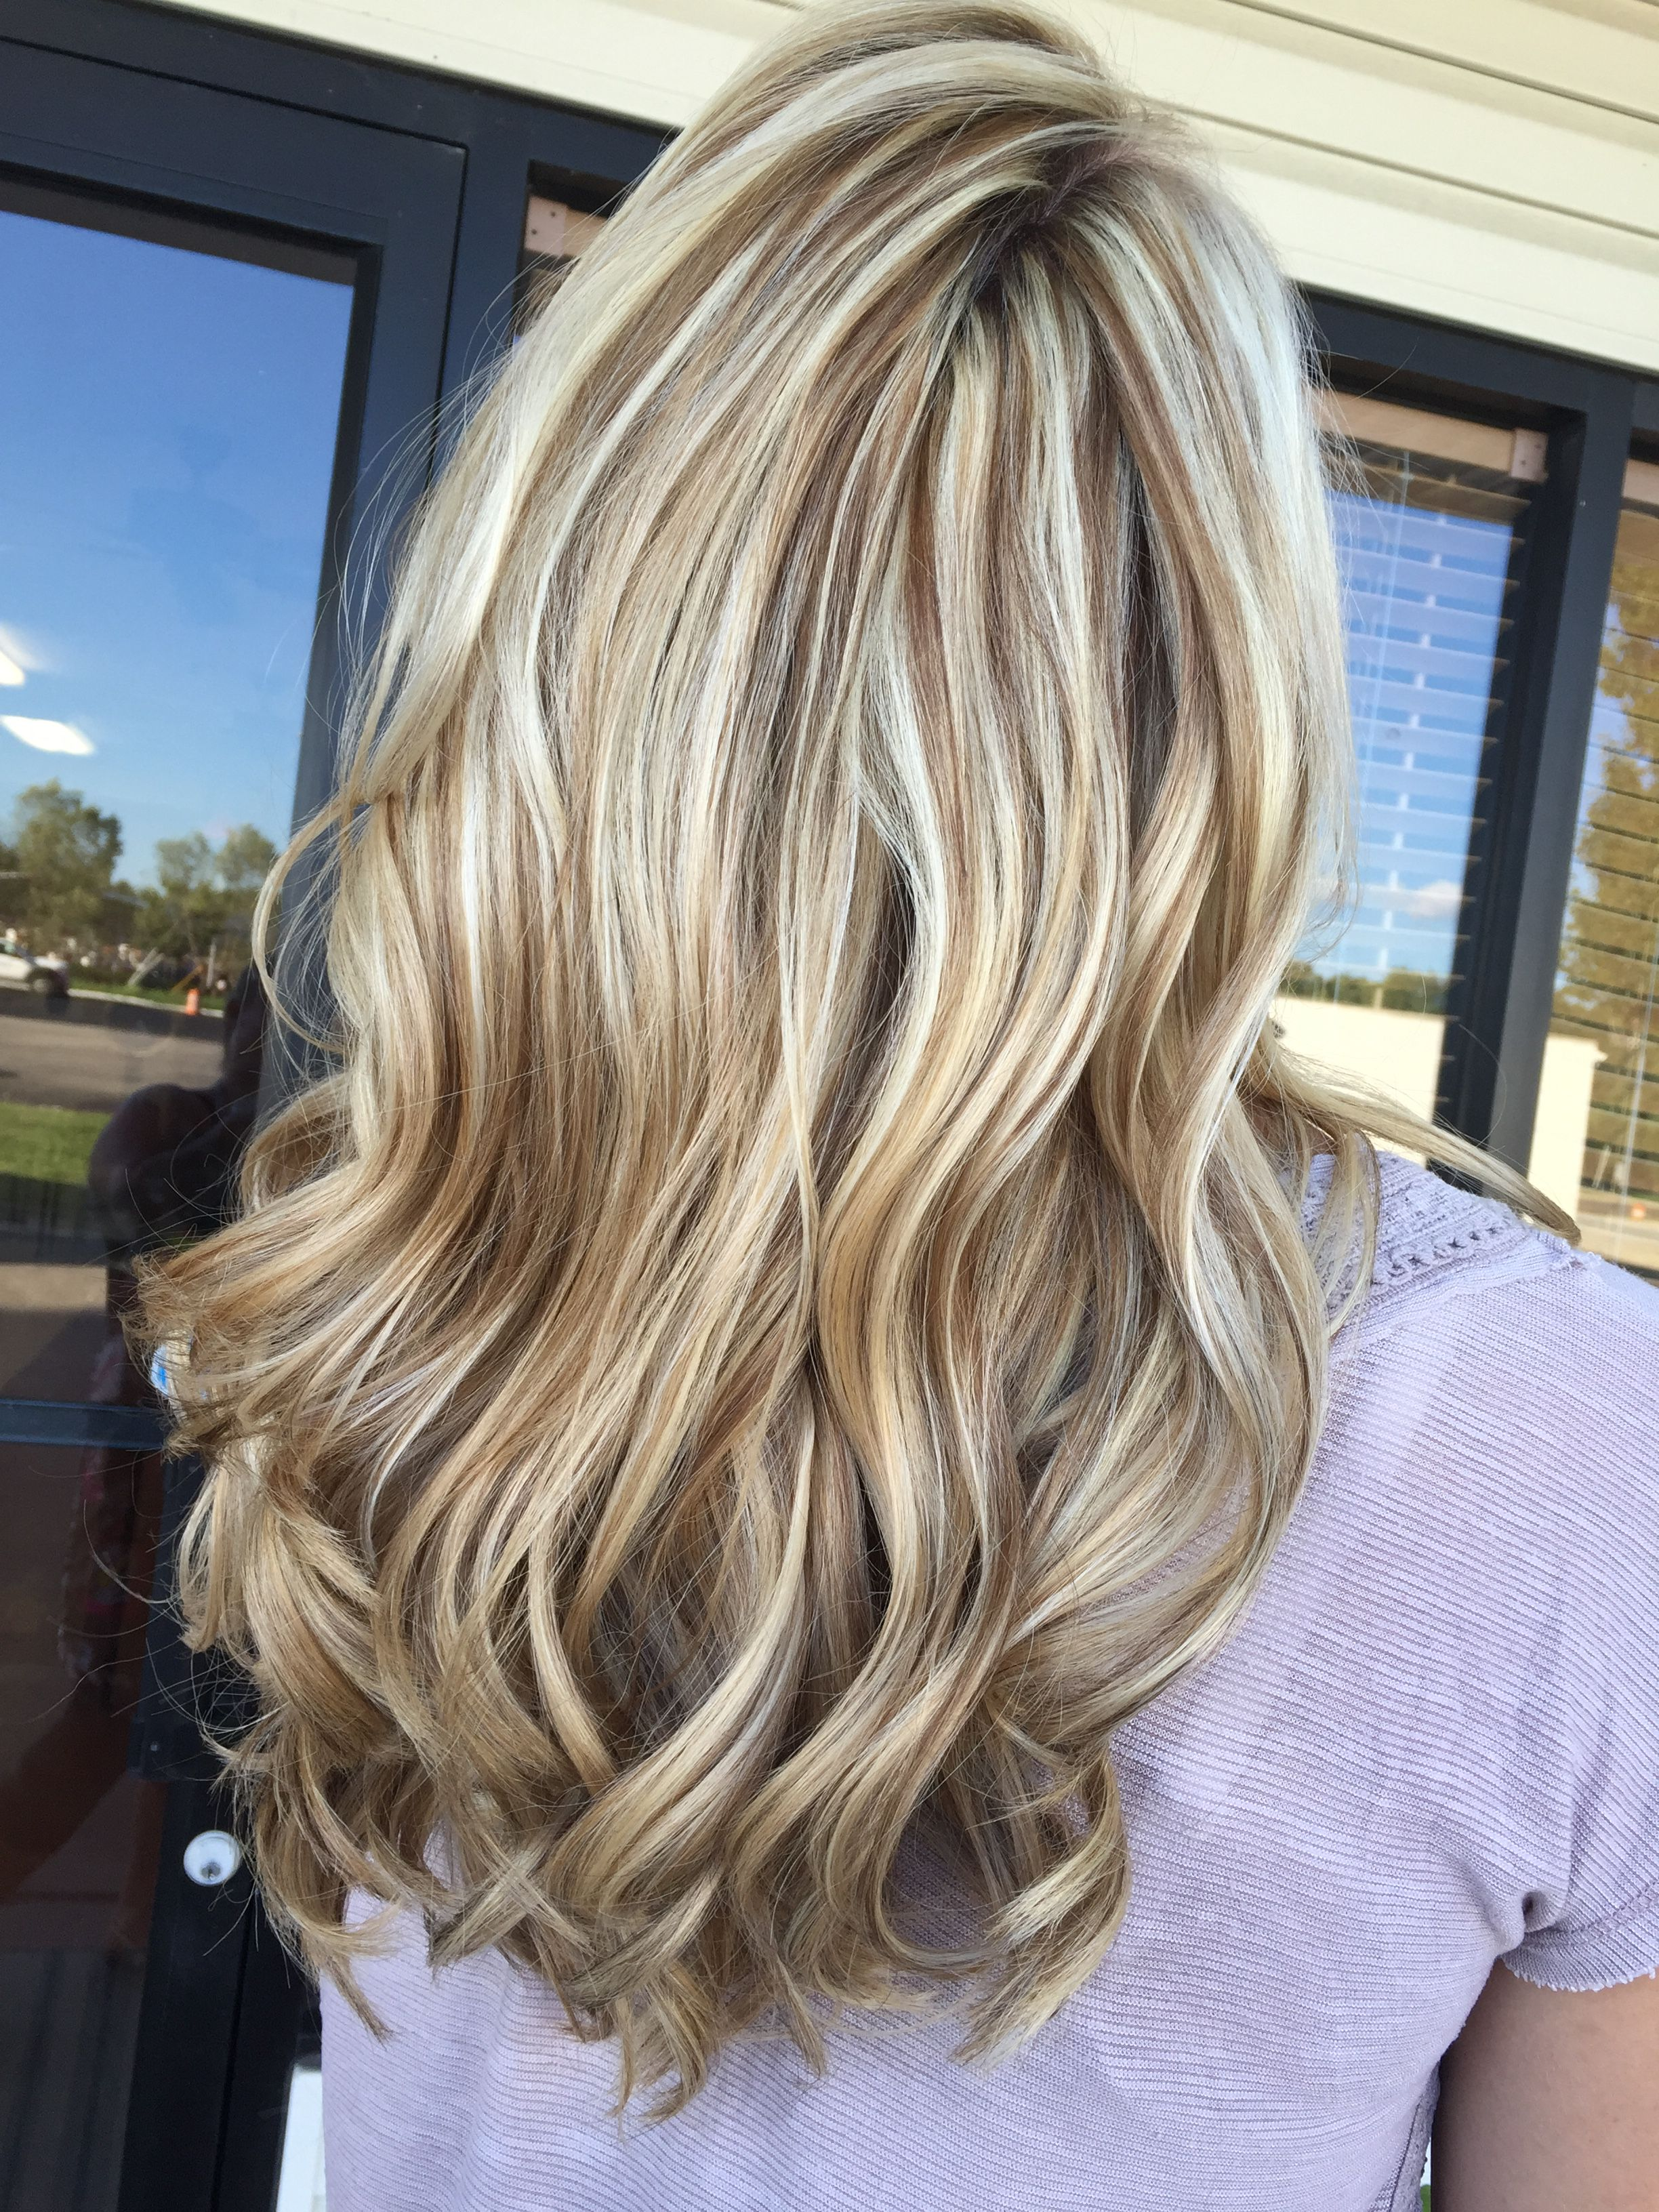 Stunning ice blonde and chocolate brown lowlight beautiful hair